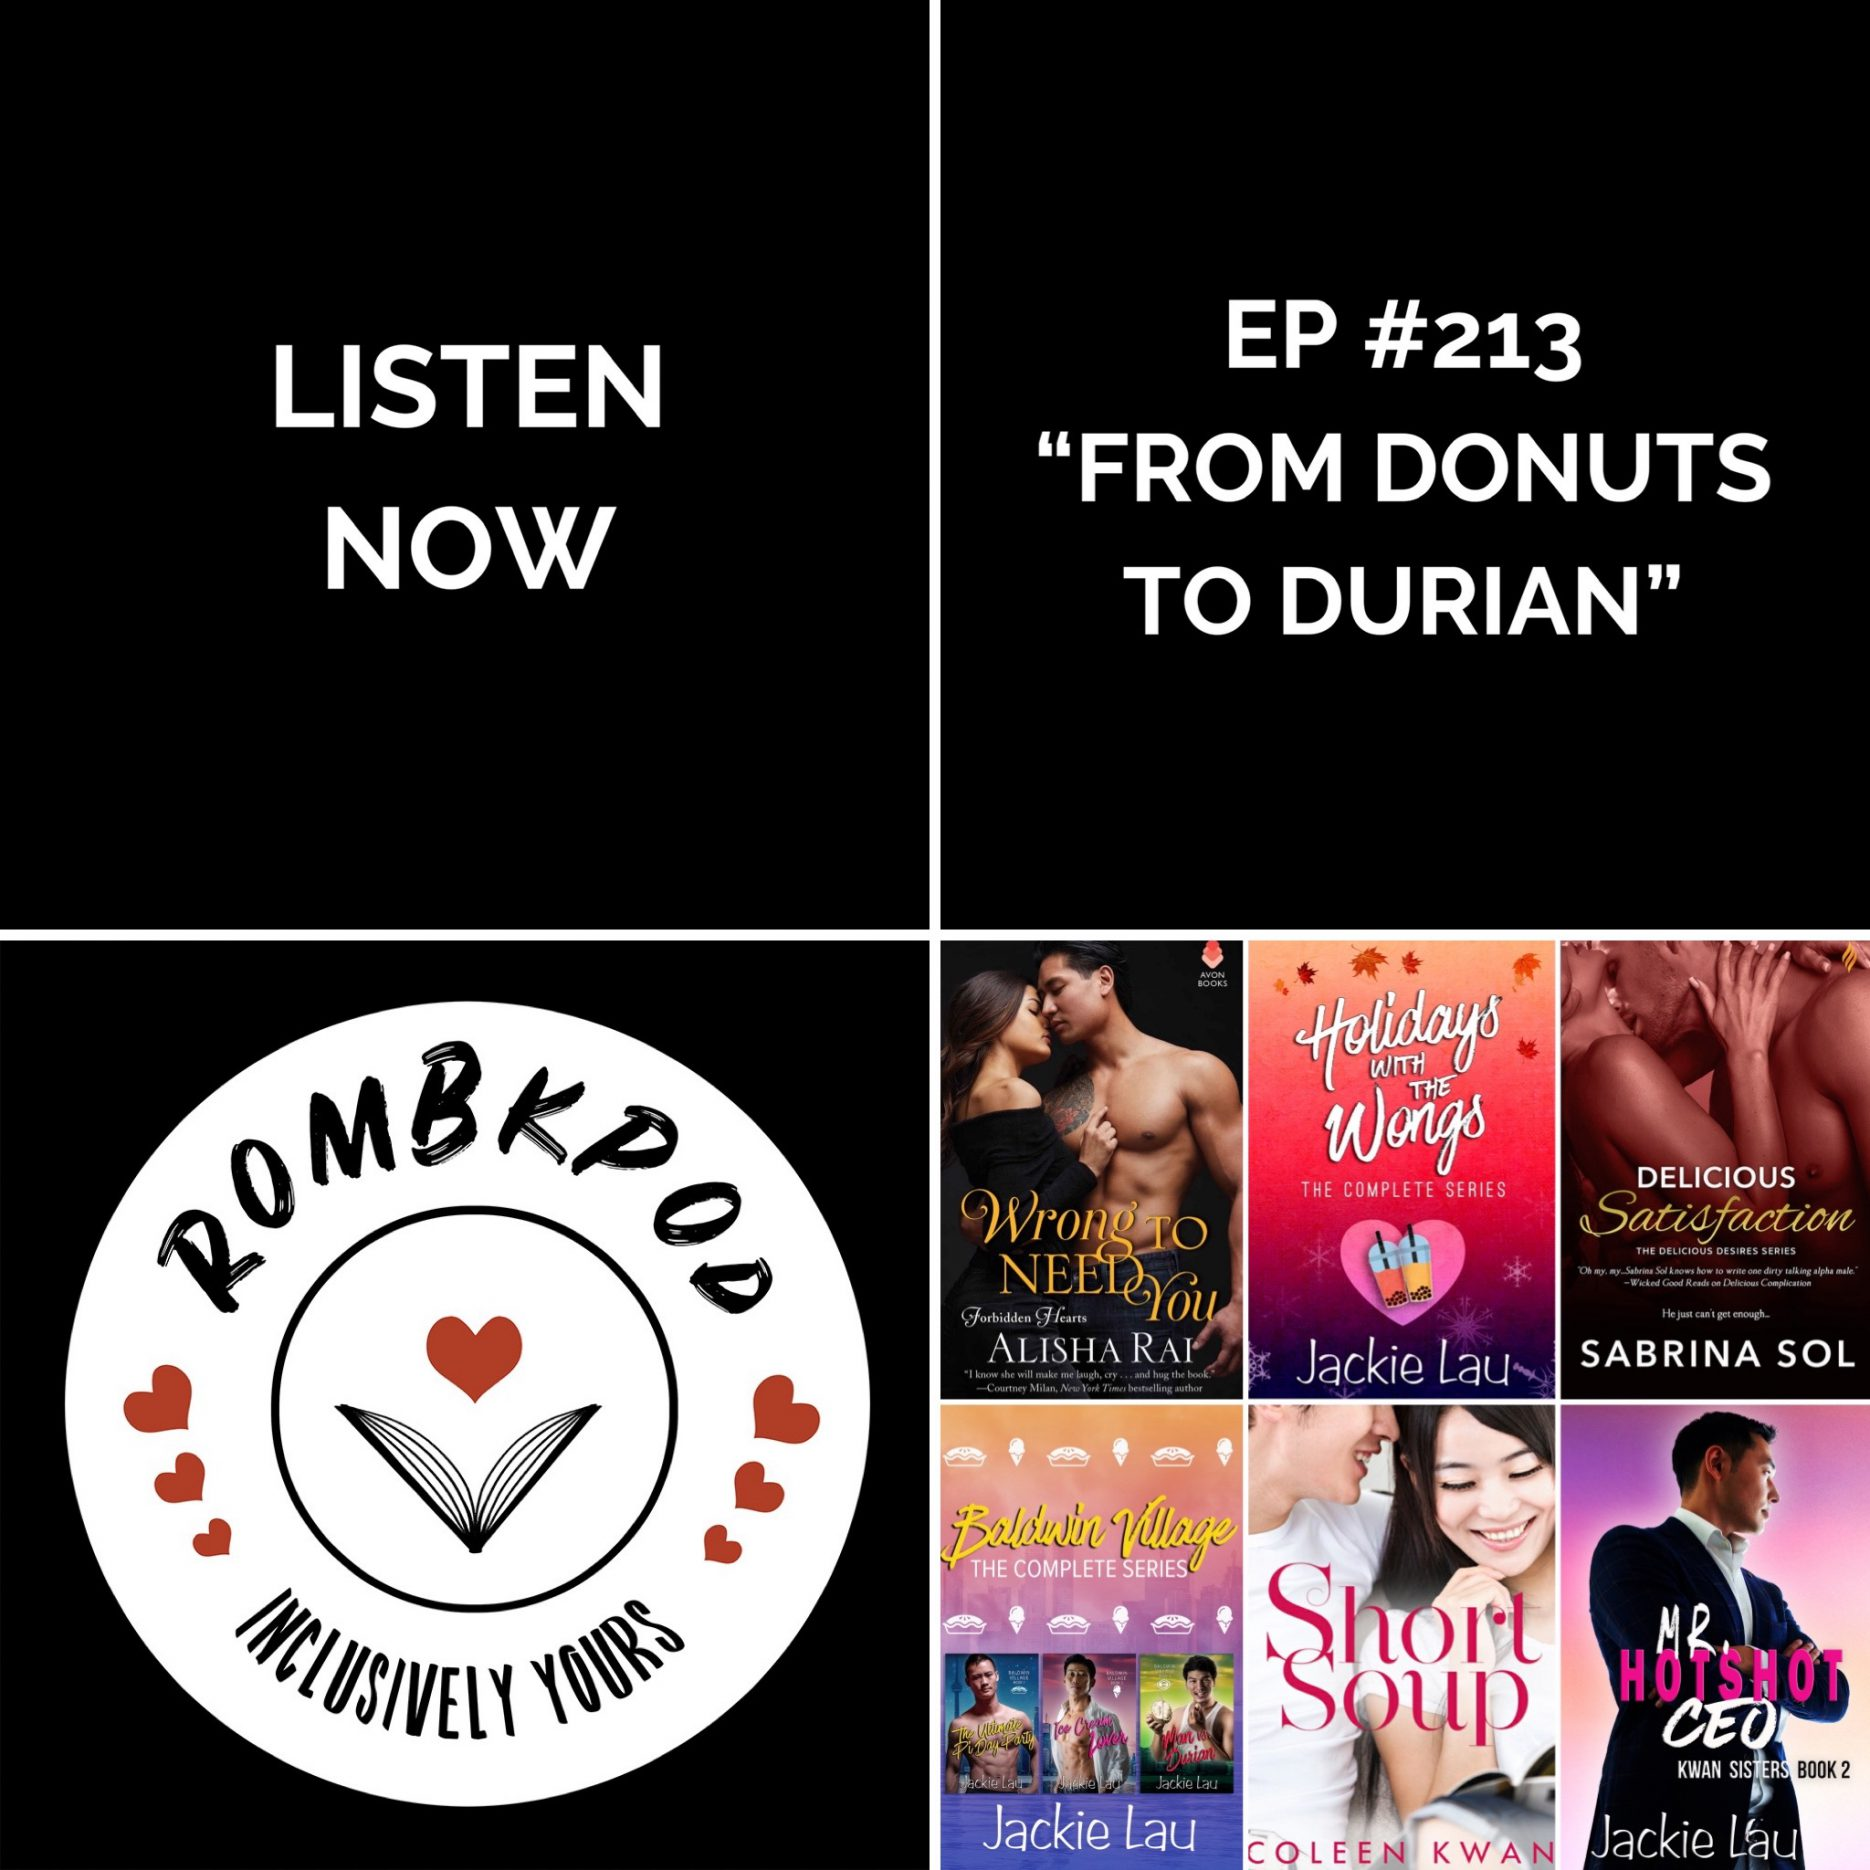 """IMAGE: lower left corner, RomBkPod heart logo; lower right corner, ep #213 book cover collage; IMAGE TEXT: Listen Now, ep #213 """"From Donuts to Durian"""""""